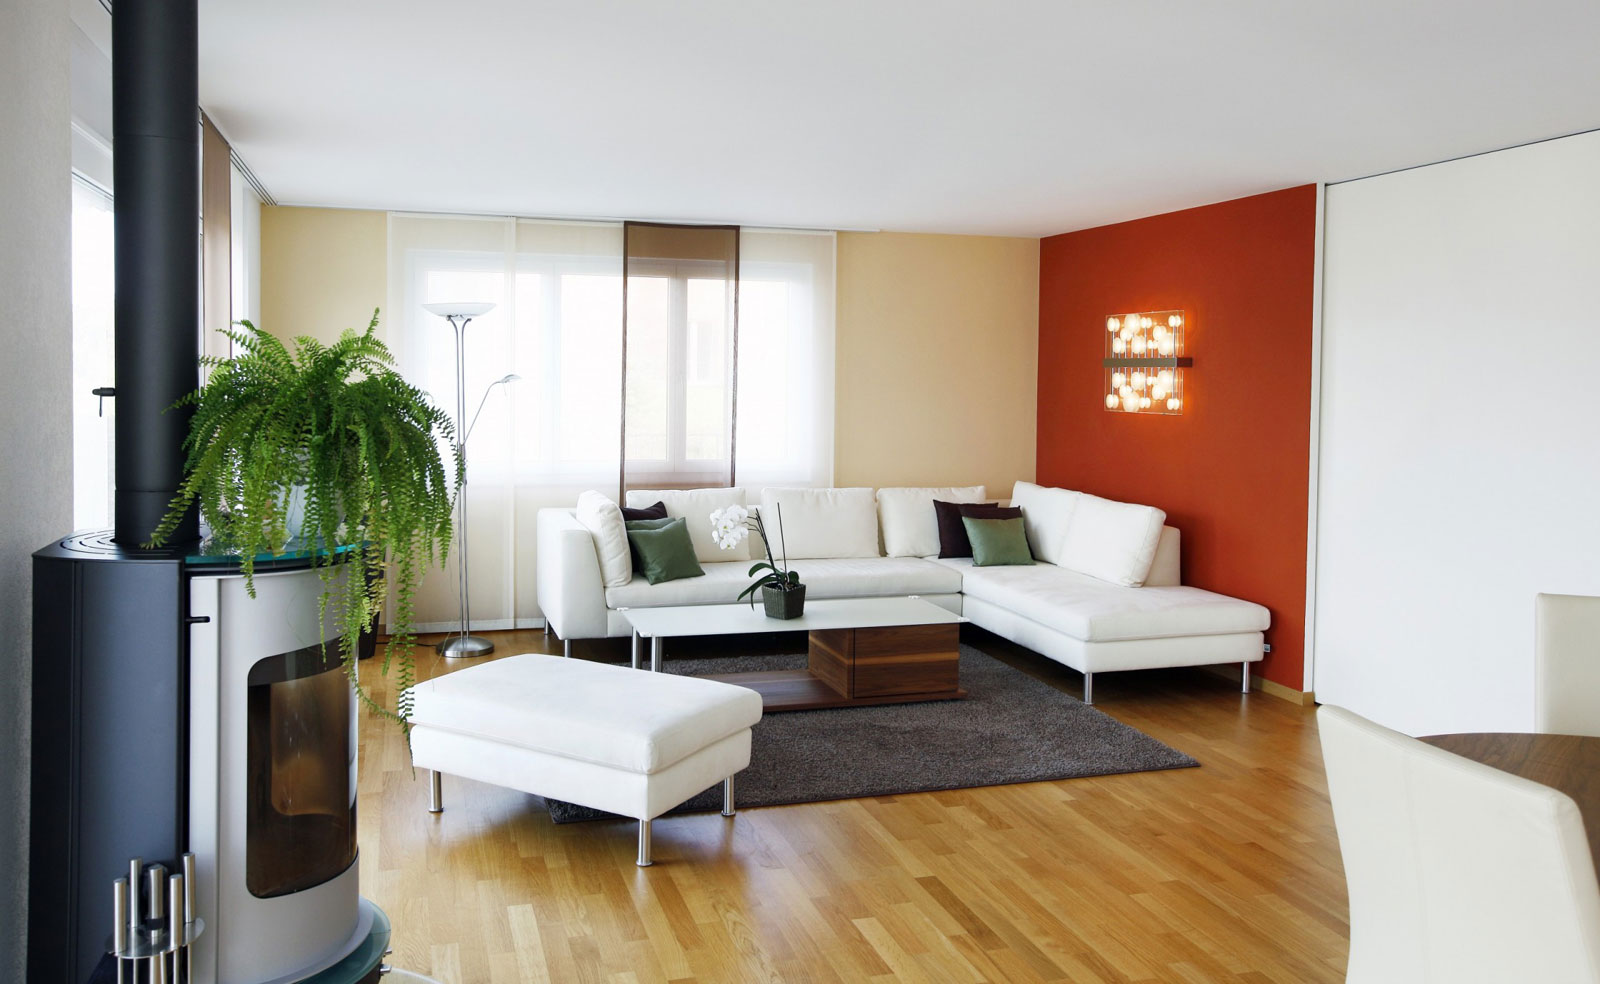 Interior designers and painter from Diwefa beautify your home.